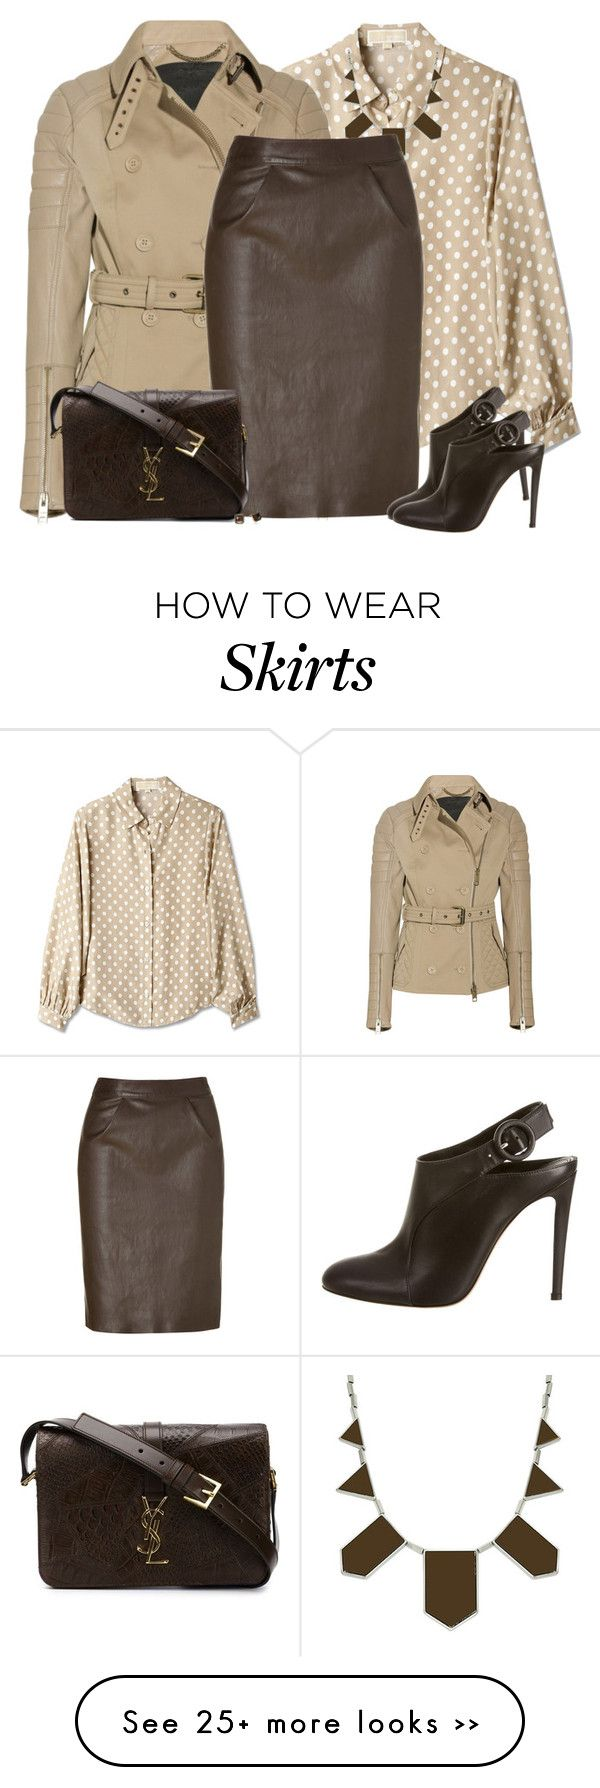 """""""Brown Leather Skirt"""" by daiscat on Polyvore featuring MICHAEL Michael Kors, Burberry, House of Harlow 1960, Jitrois, Gianvito Rossi, Yves Saint Laurent and FOSSIL"""